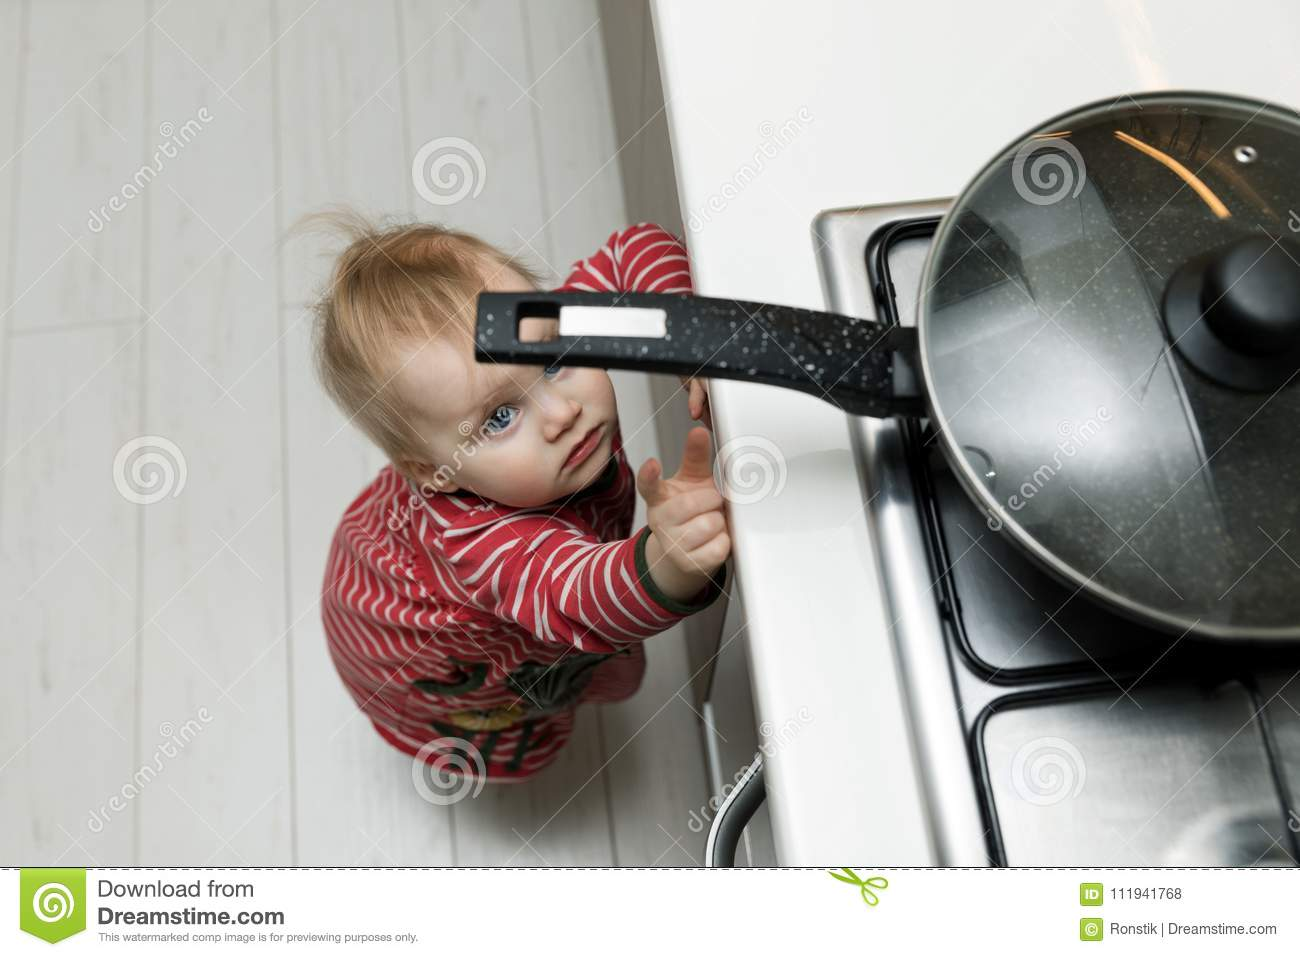 11 570 Child Safety Home Photos Free Royalty Free Stock Photos From Dreamstime